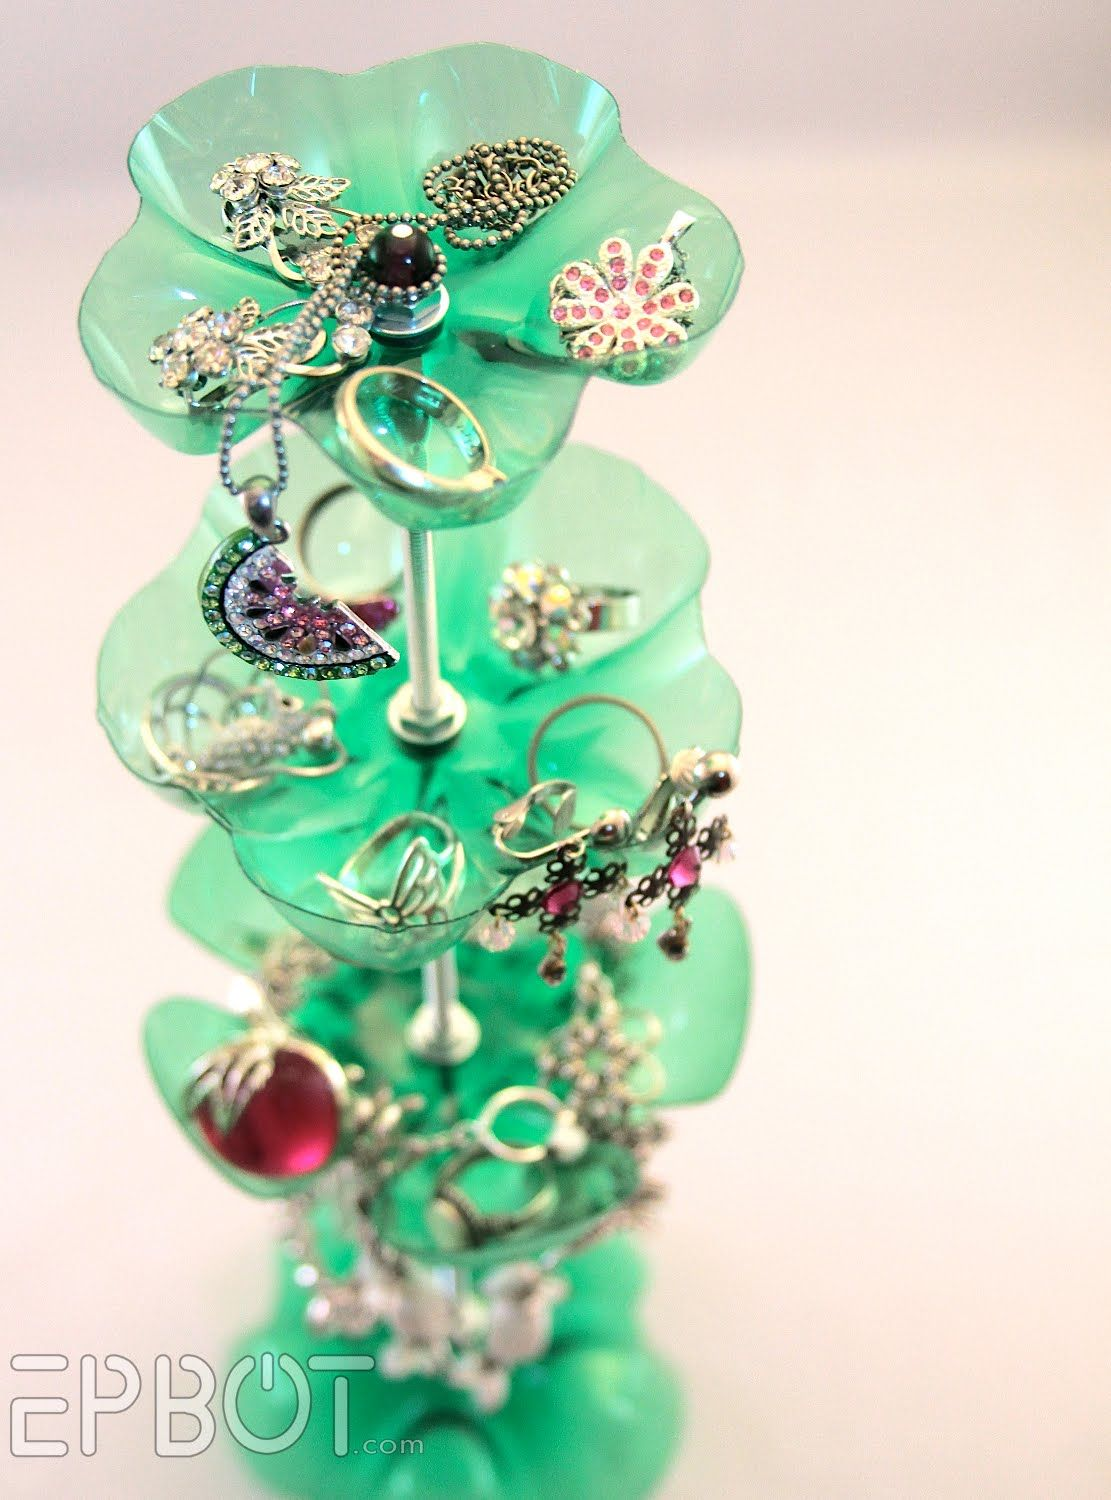 Jewelry stand out of soda bottles